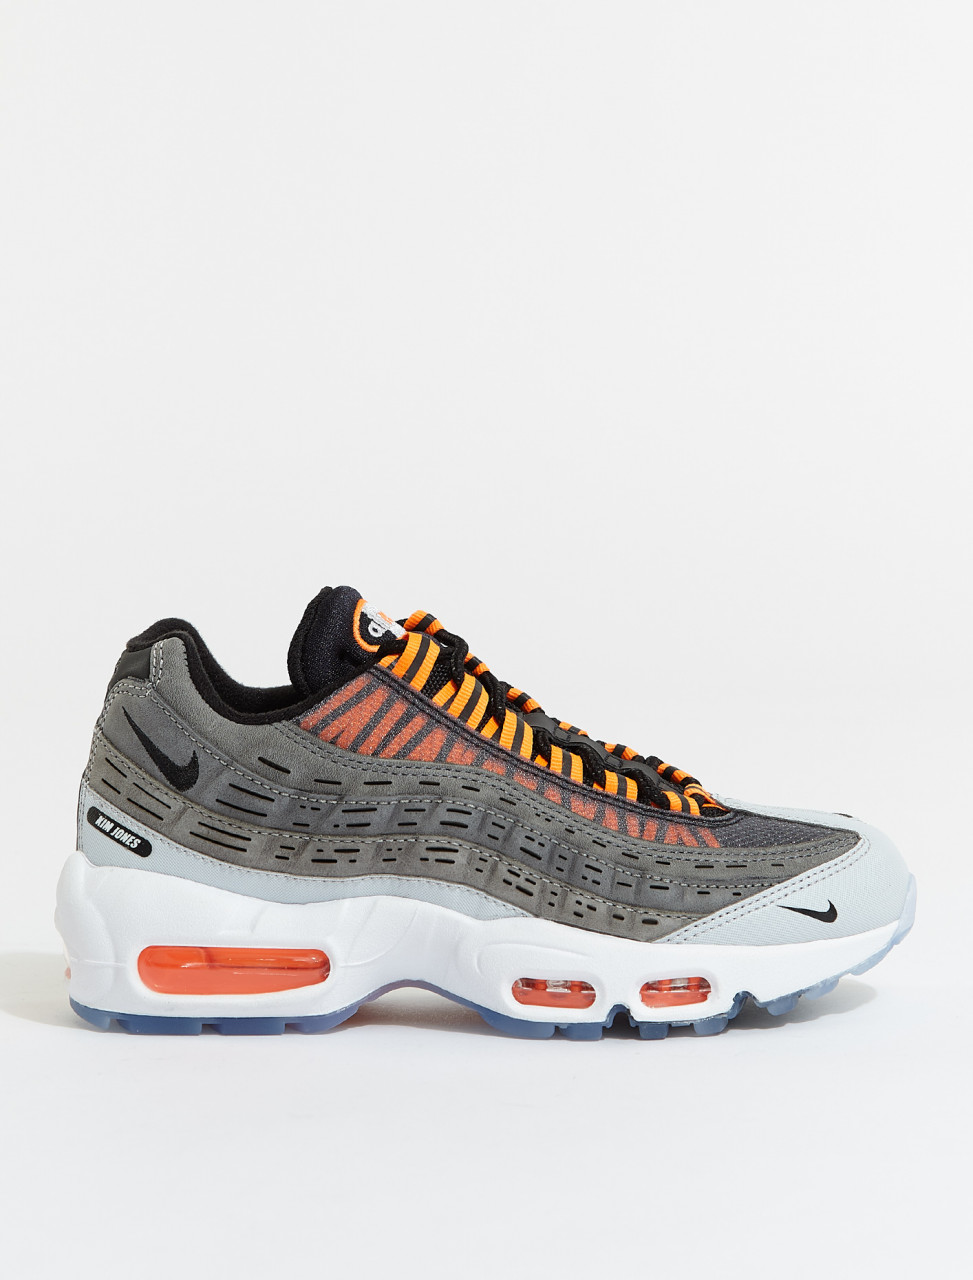 DD1871-001 NIKE AIR MAX 95 KIM JONES BLACK TOTAL ORANGE DARK GREY